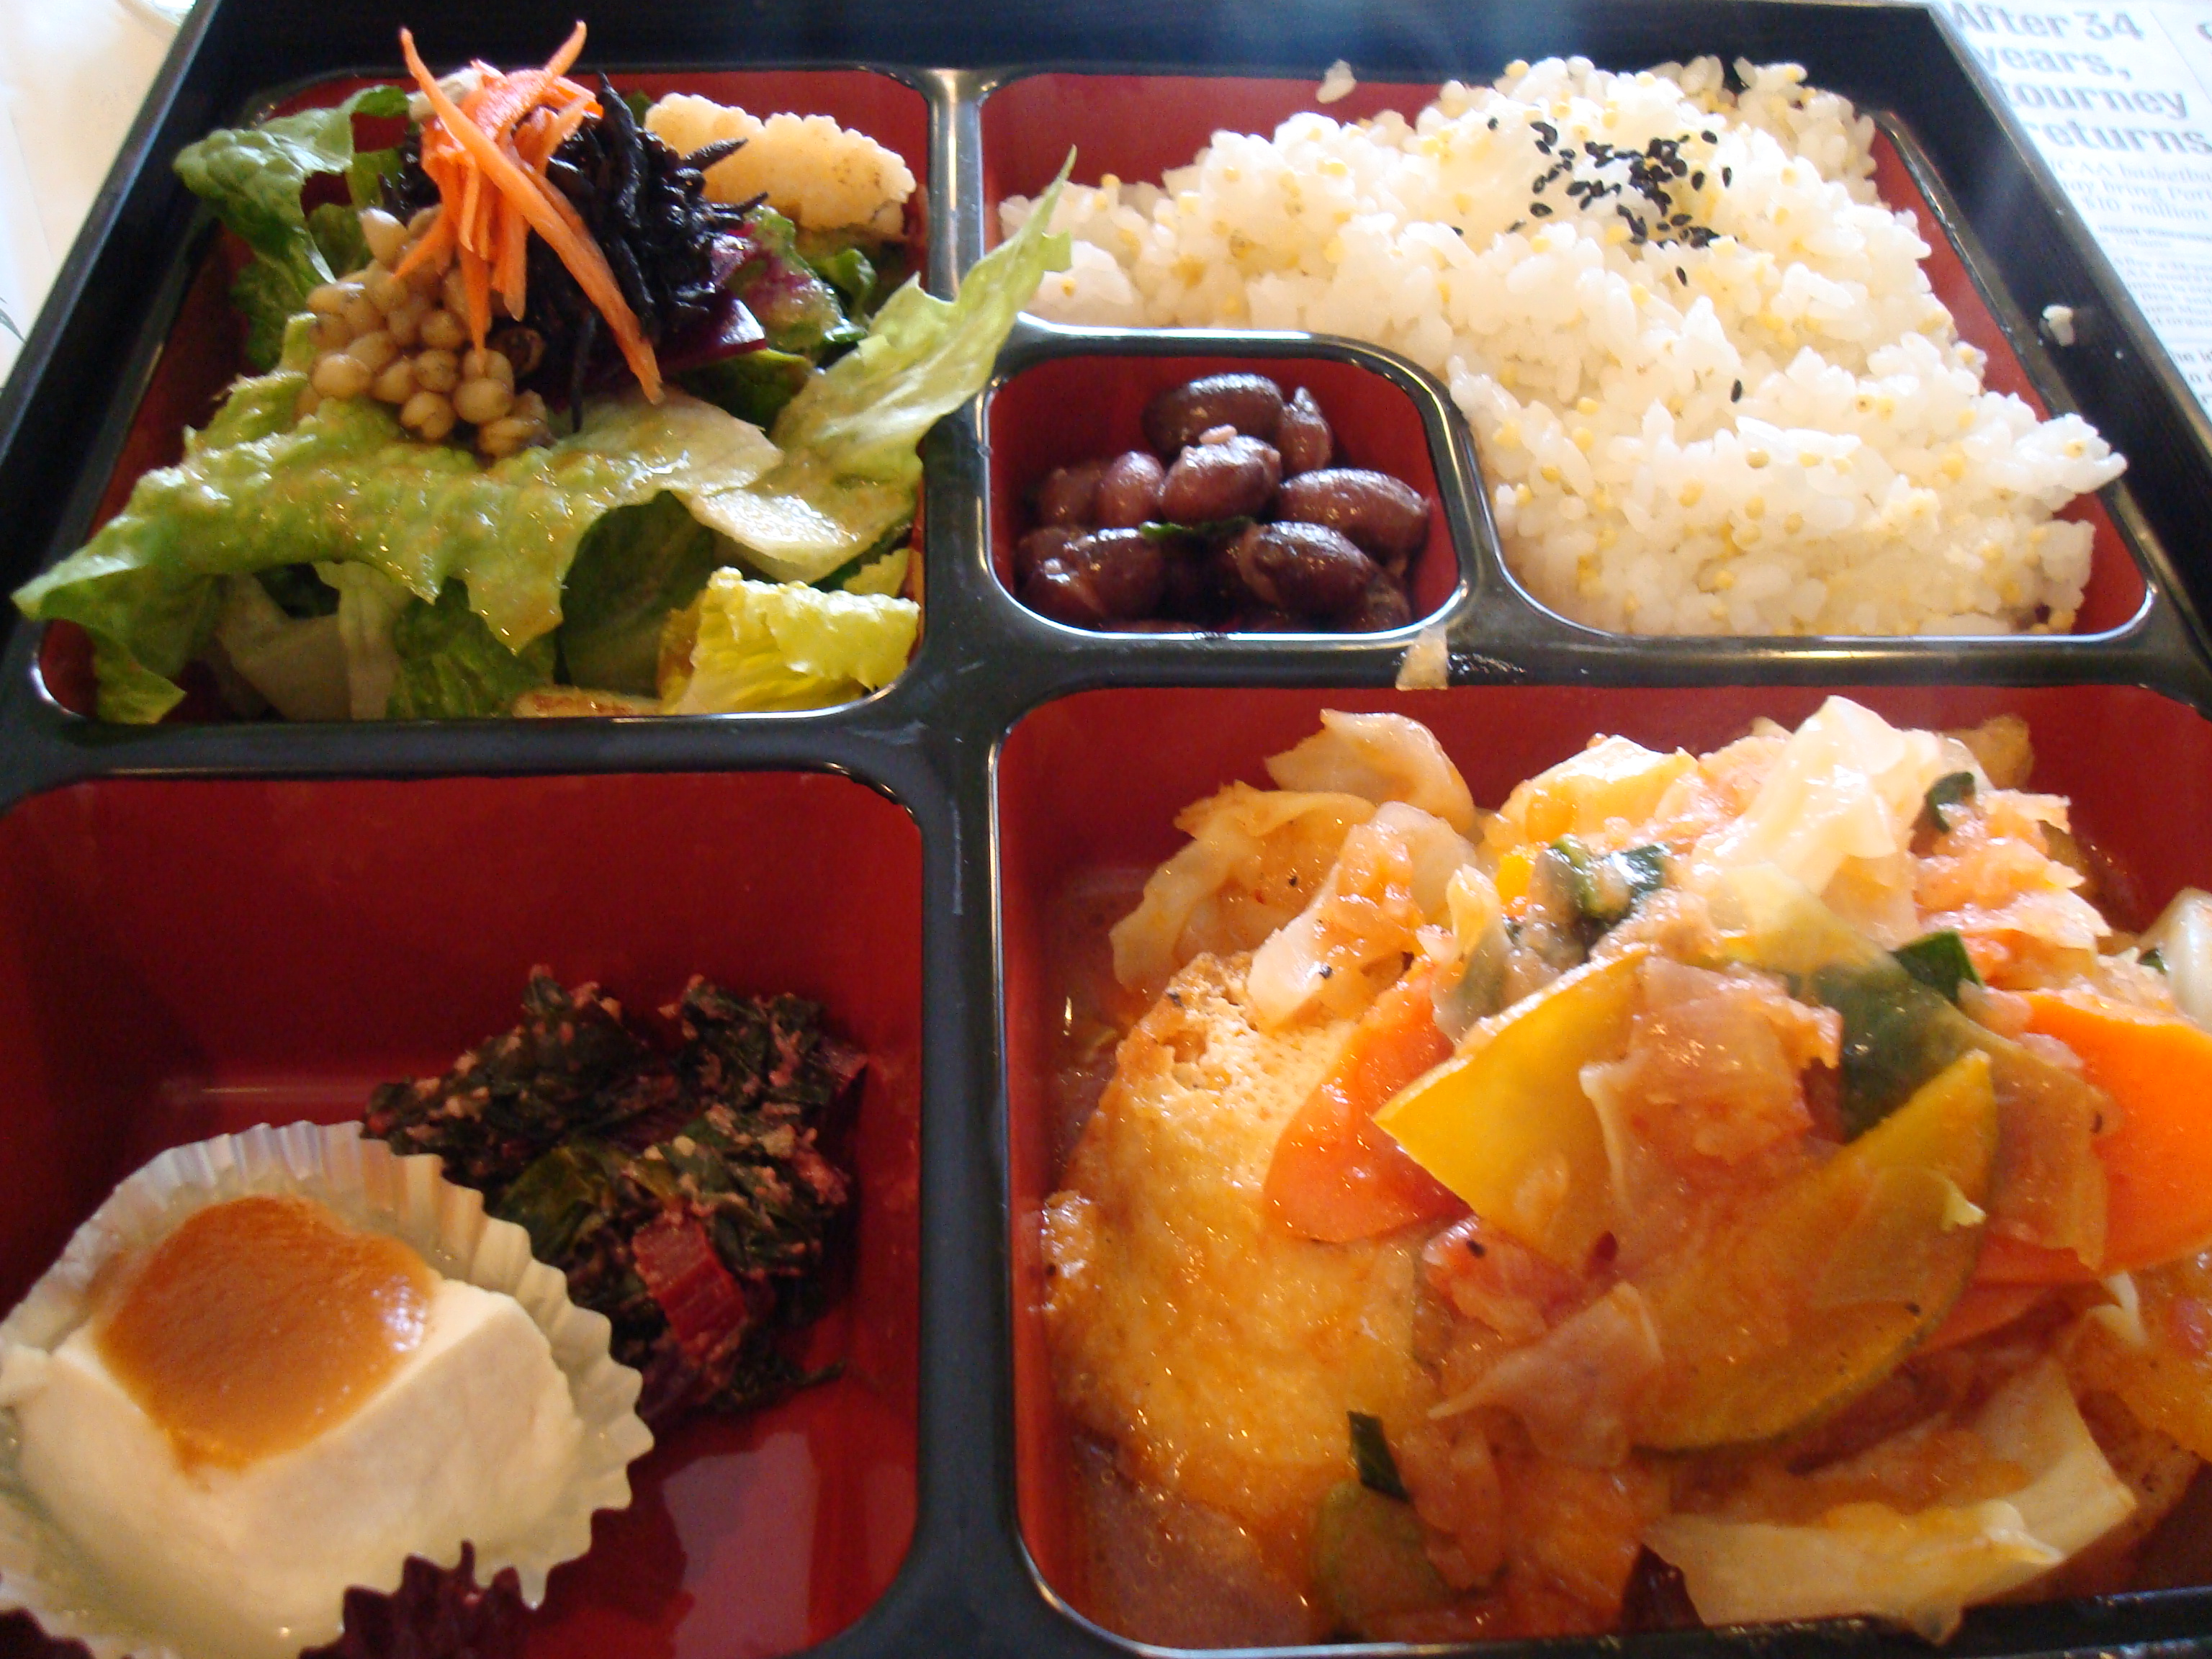 Farmers Veggie Bento (cabbage and kabucha squash braised in tomato sauce)